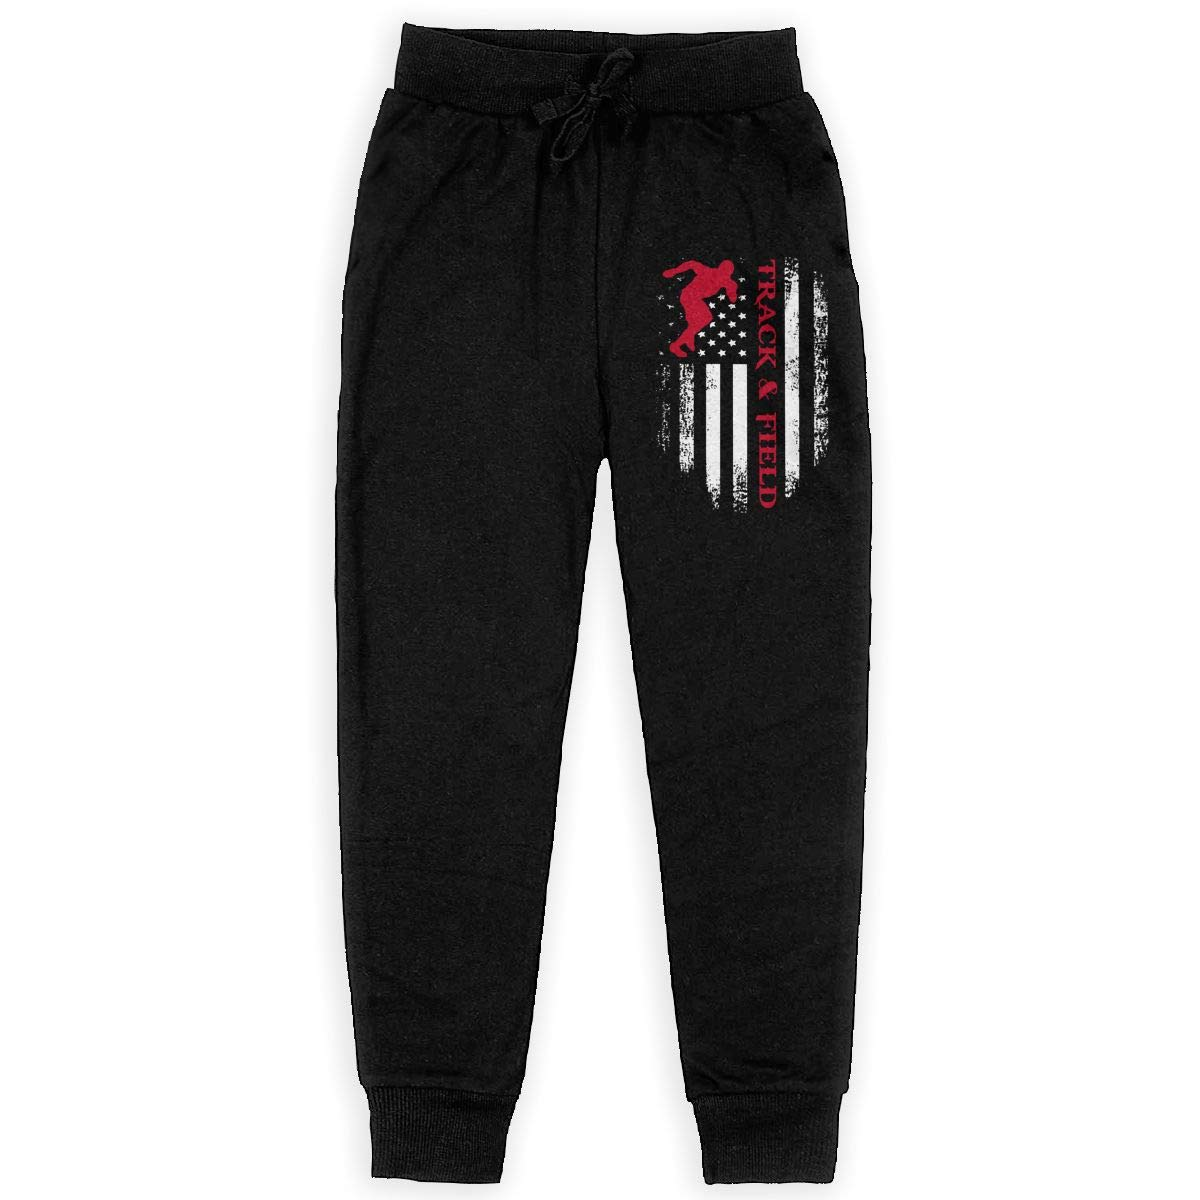 MAOYI/&J6 American Flag Track and Field Long Sweatpants Youth Boys Girls Jogger Trousers with Pockets